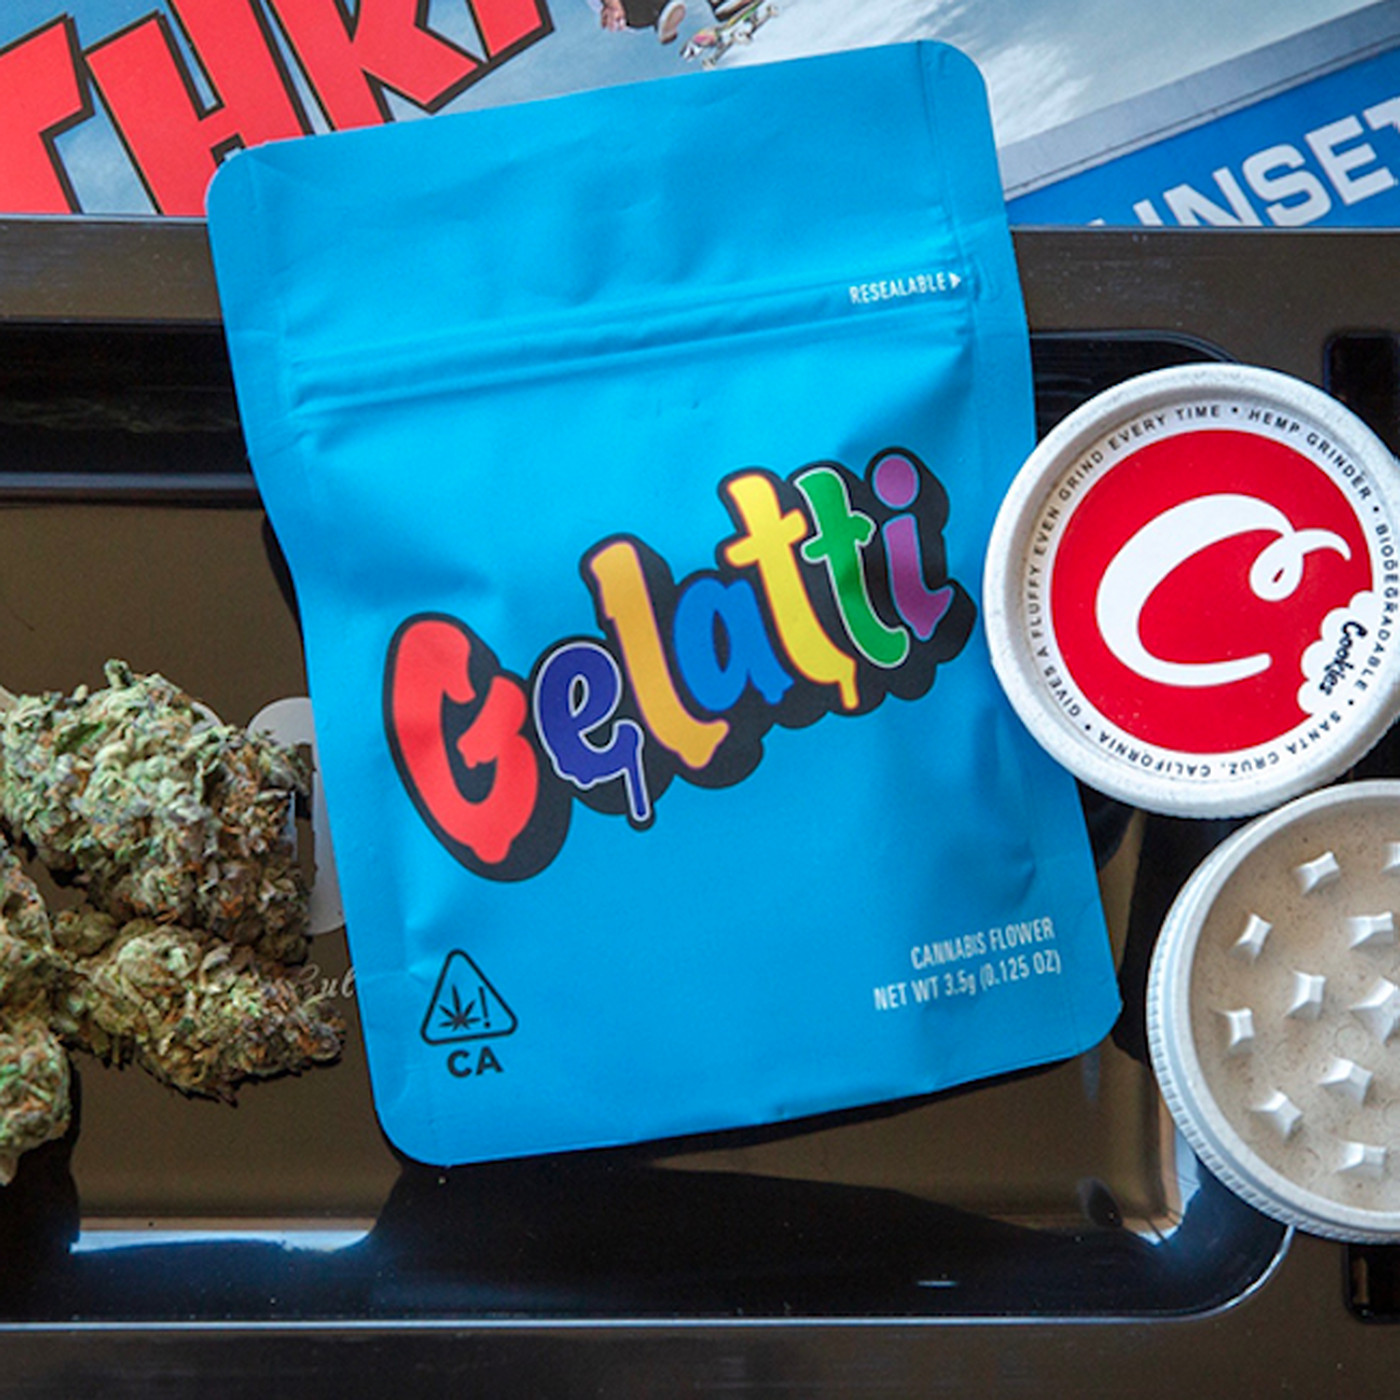 Cookies weed strains will soon be available in Illinois - Chicago Sun-Times